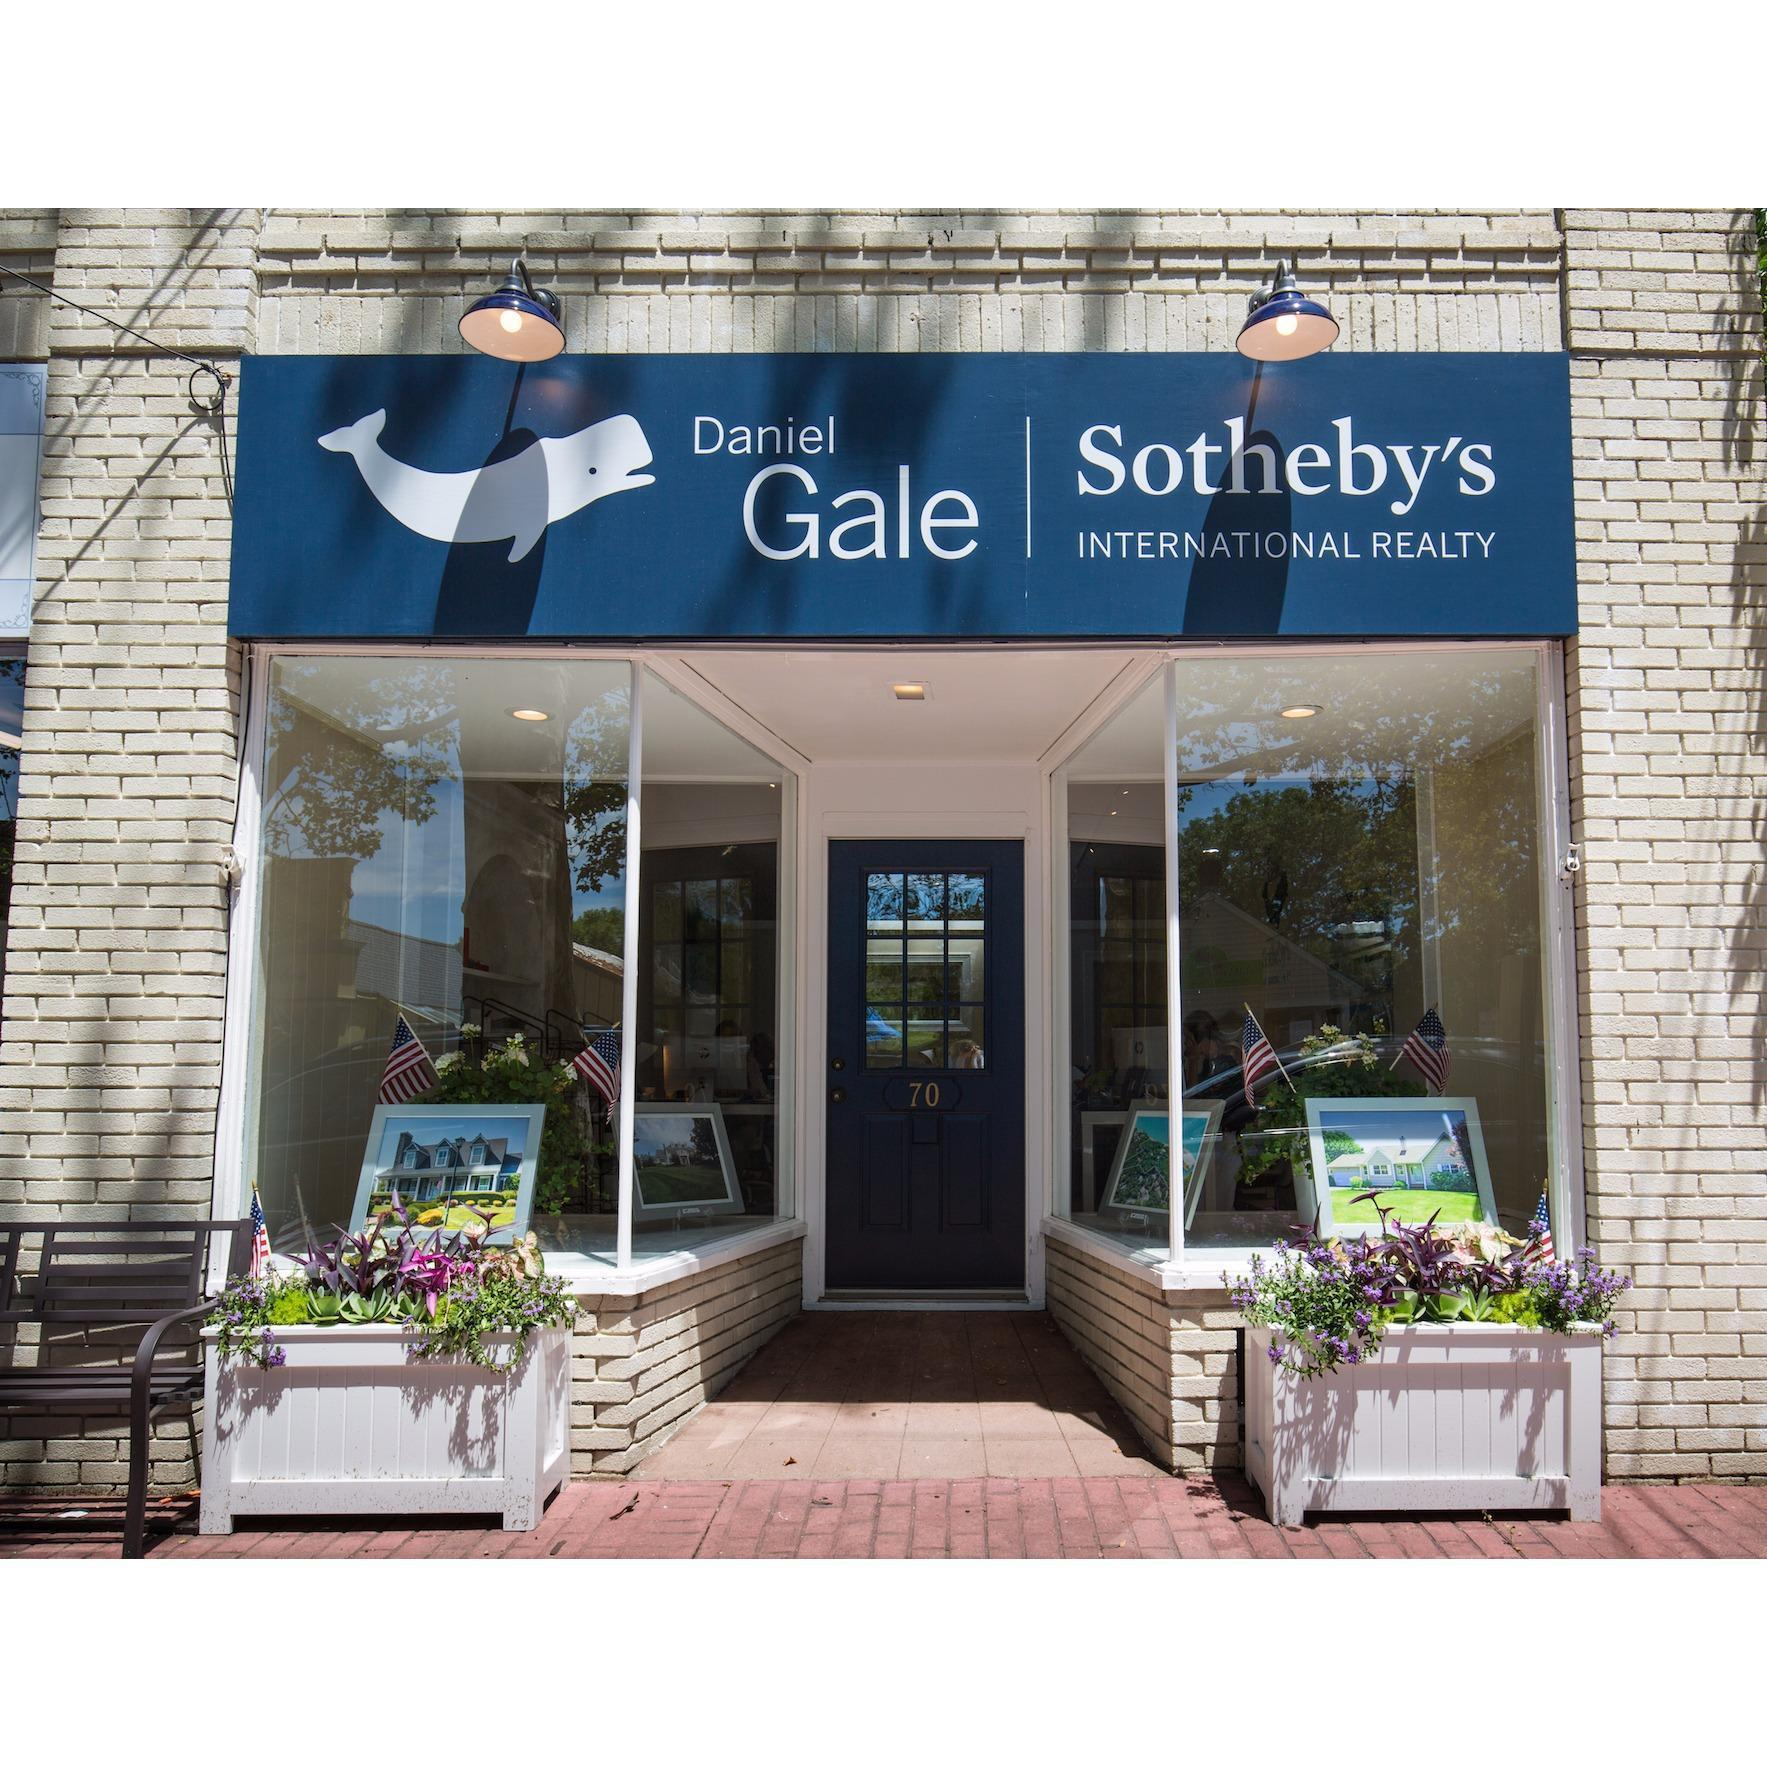 Rental Property Agency: Daniel Gale Sotheby's International Realty